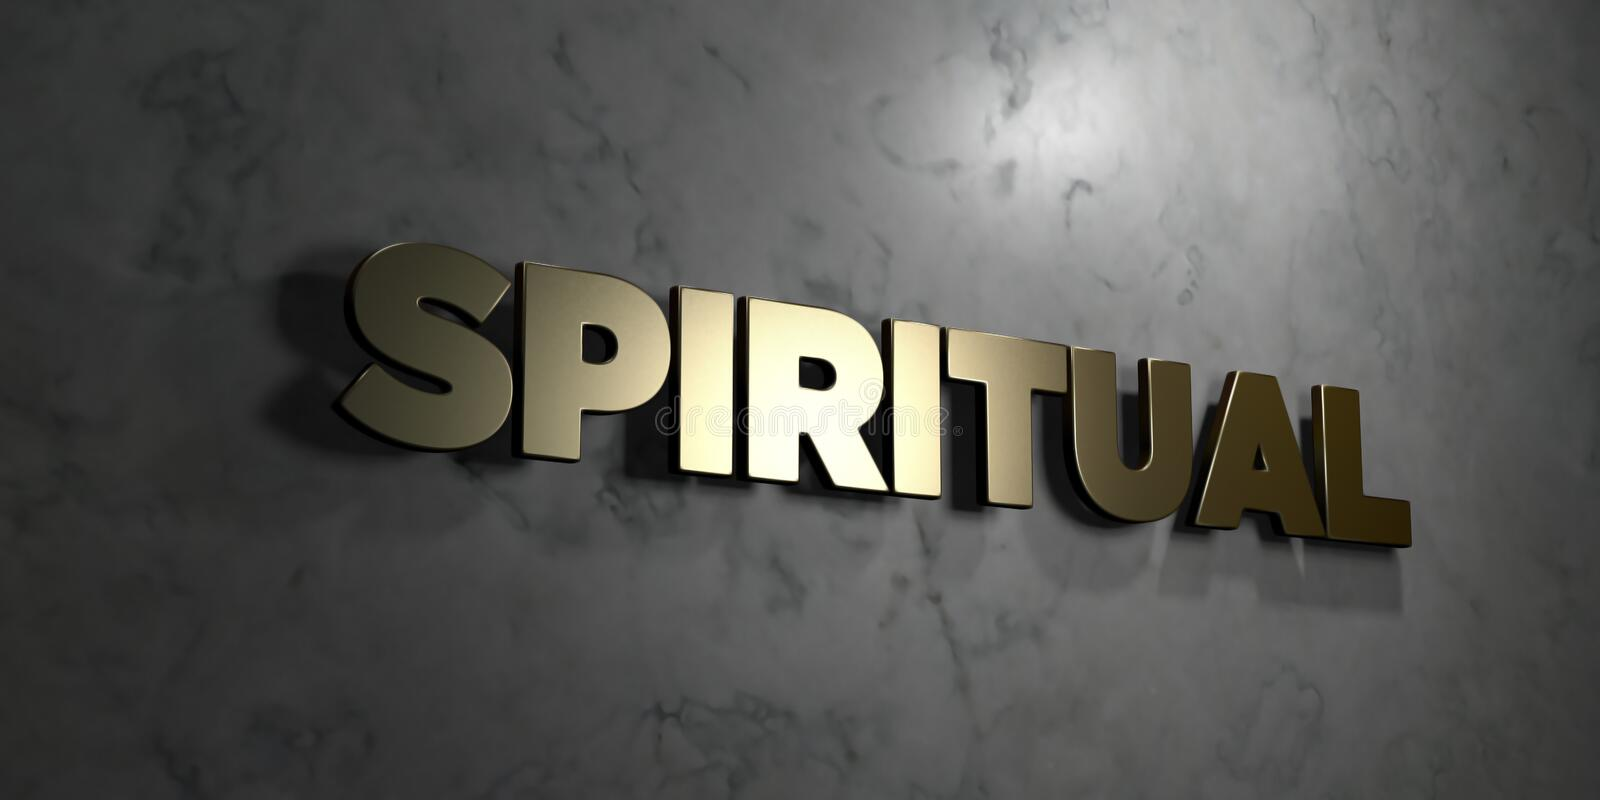 Spiritual - Gold sign mounted on glossy marble wall - 3D rendered royalty free stock illustration stock illustration